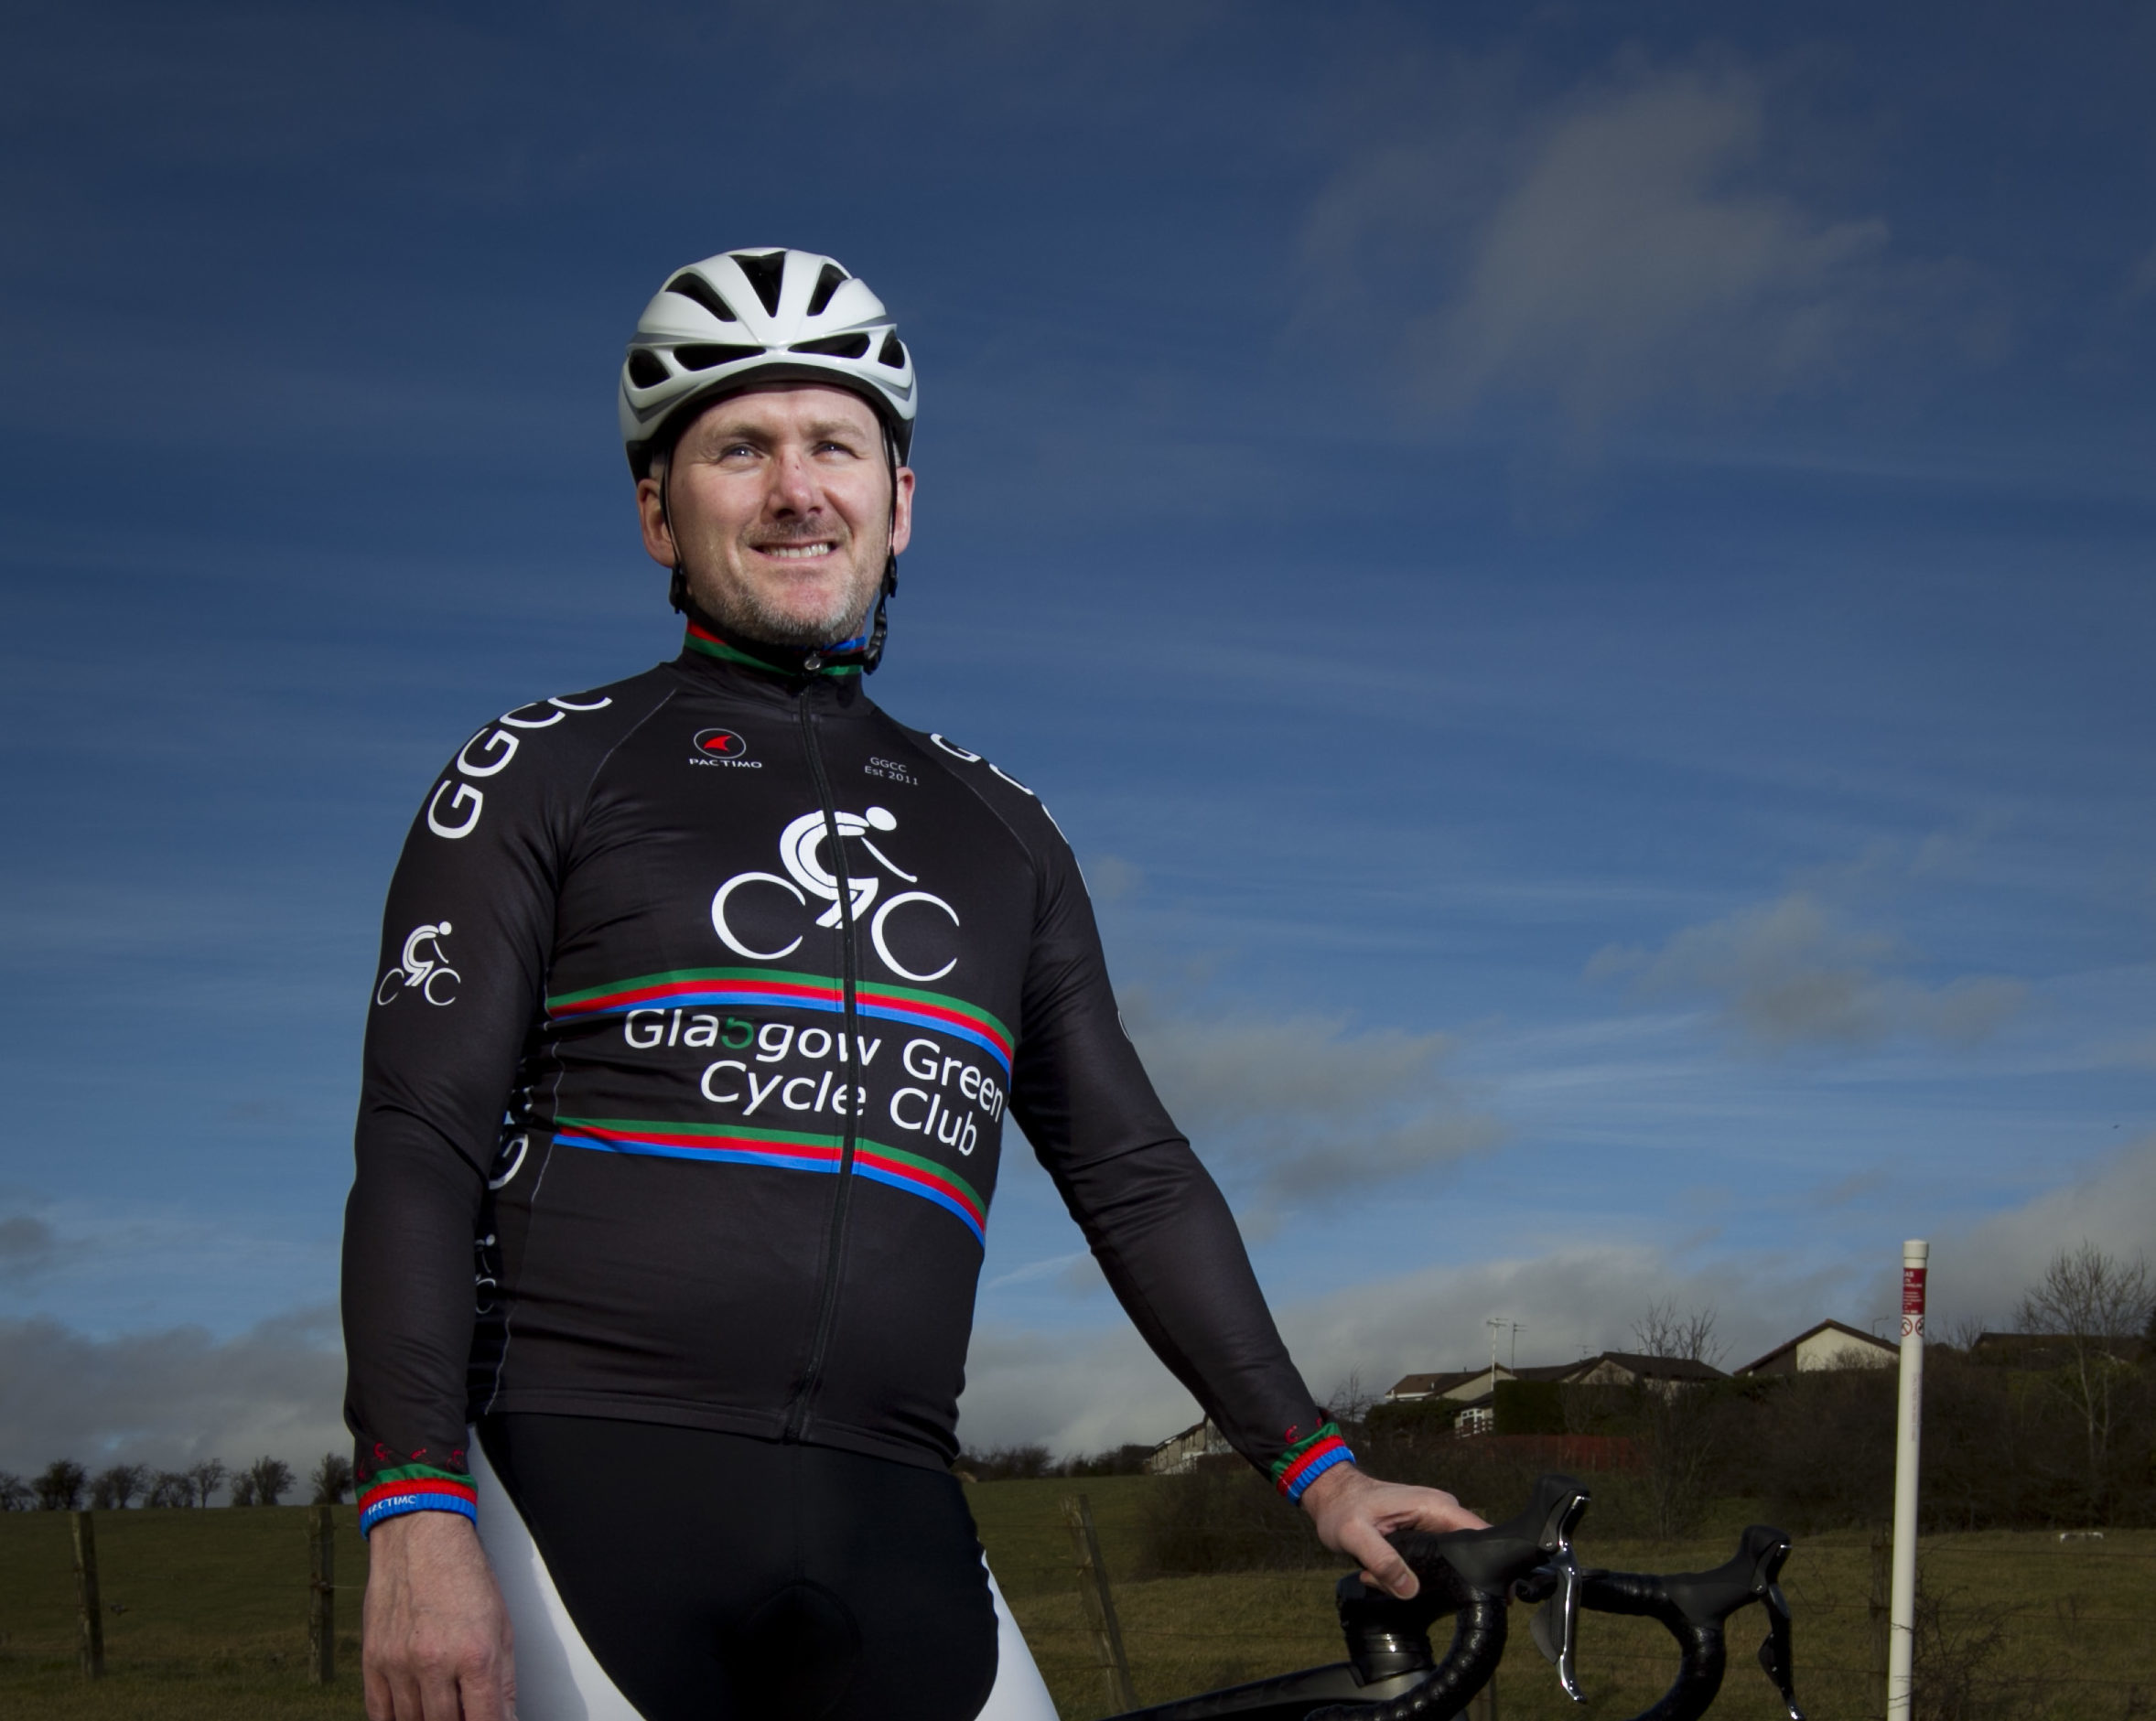 Andy Dobinson, a super fit, keen cyclist, who had a stroke a year ago. He is now on the mend and getting back on his bike. (Andrew Cawley/DC Thomson)